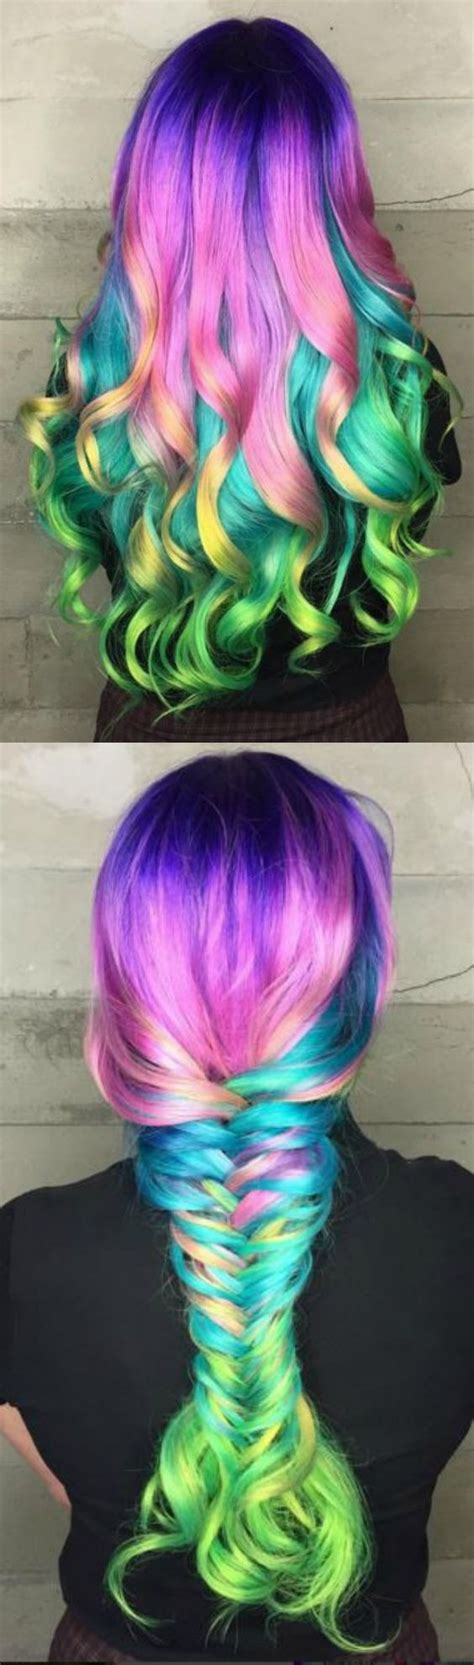 plastic rainbow hairthings collage of multi colored hair in curls big braid